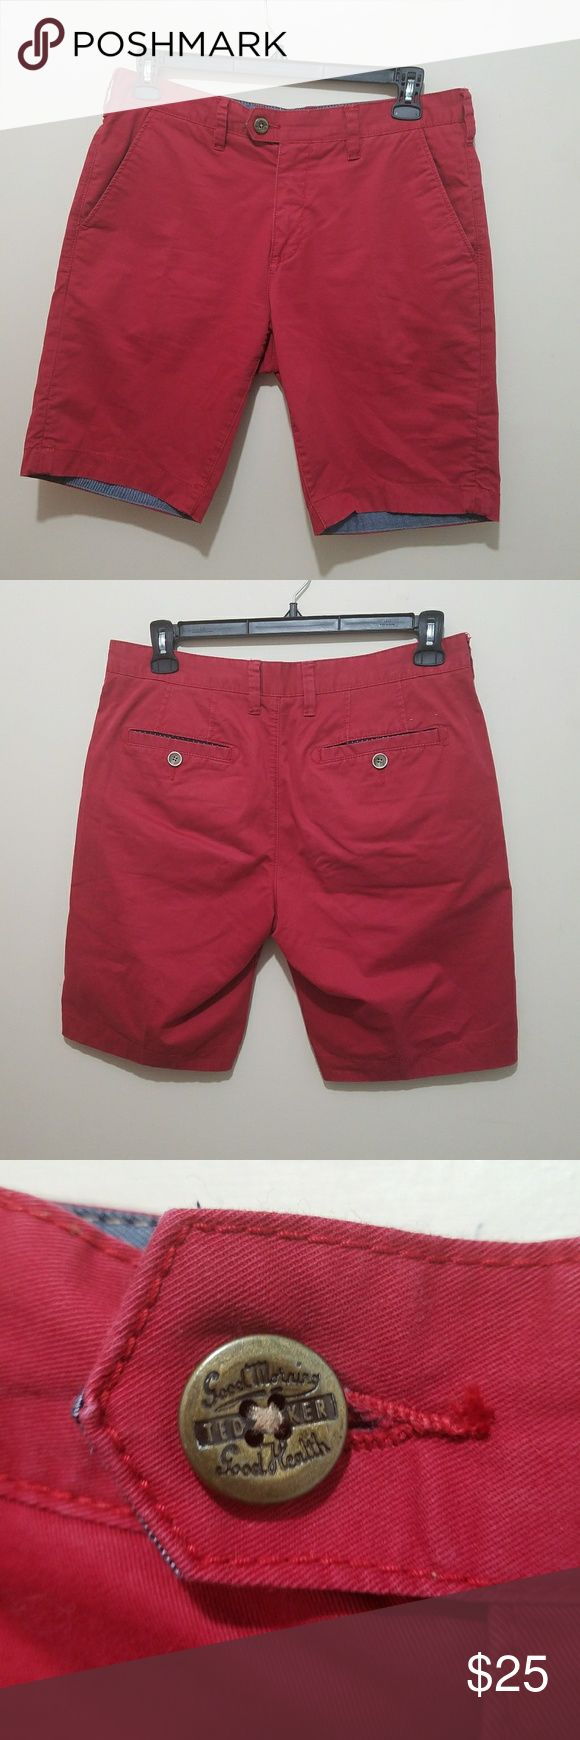 Ted Baker Red Chino Shorts Size 32 R Excellent Condition Ted Baker London Shorts Flat Front